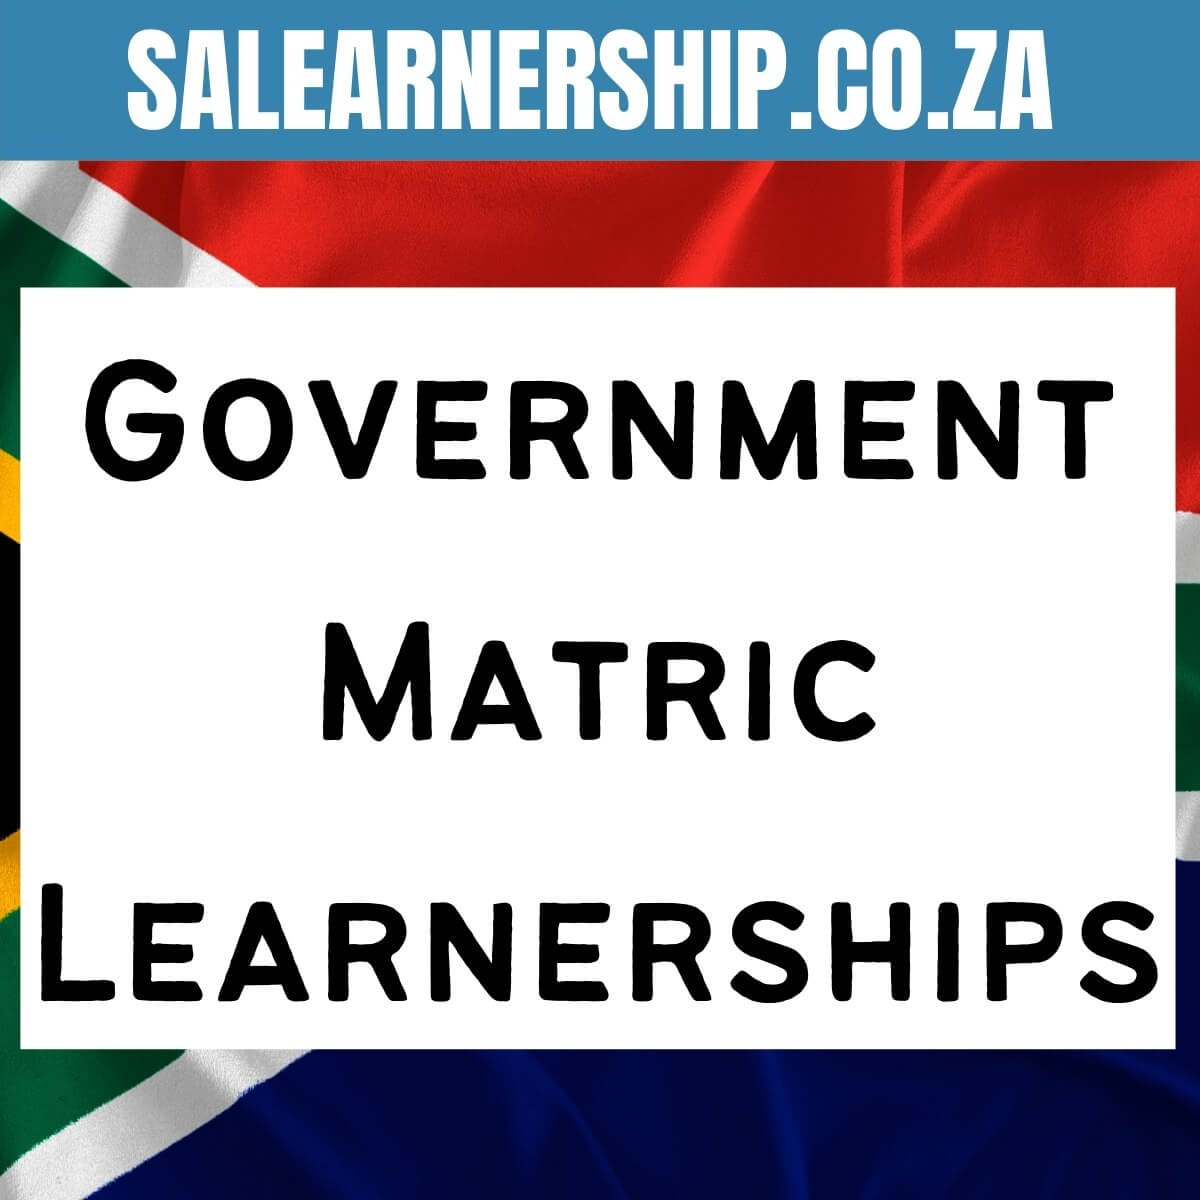 Government Matric Learnerships